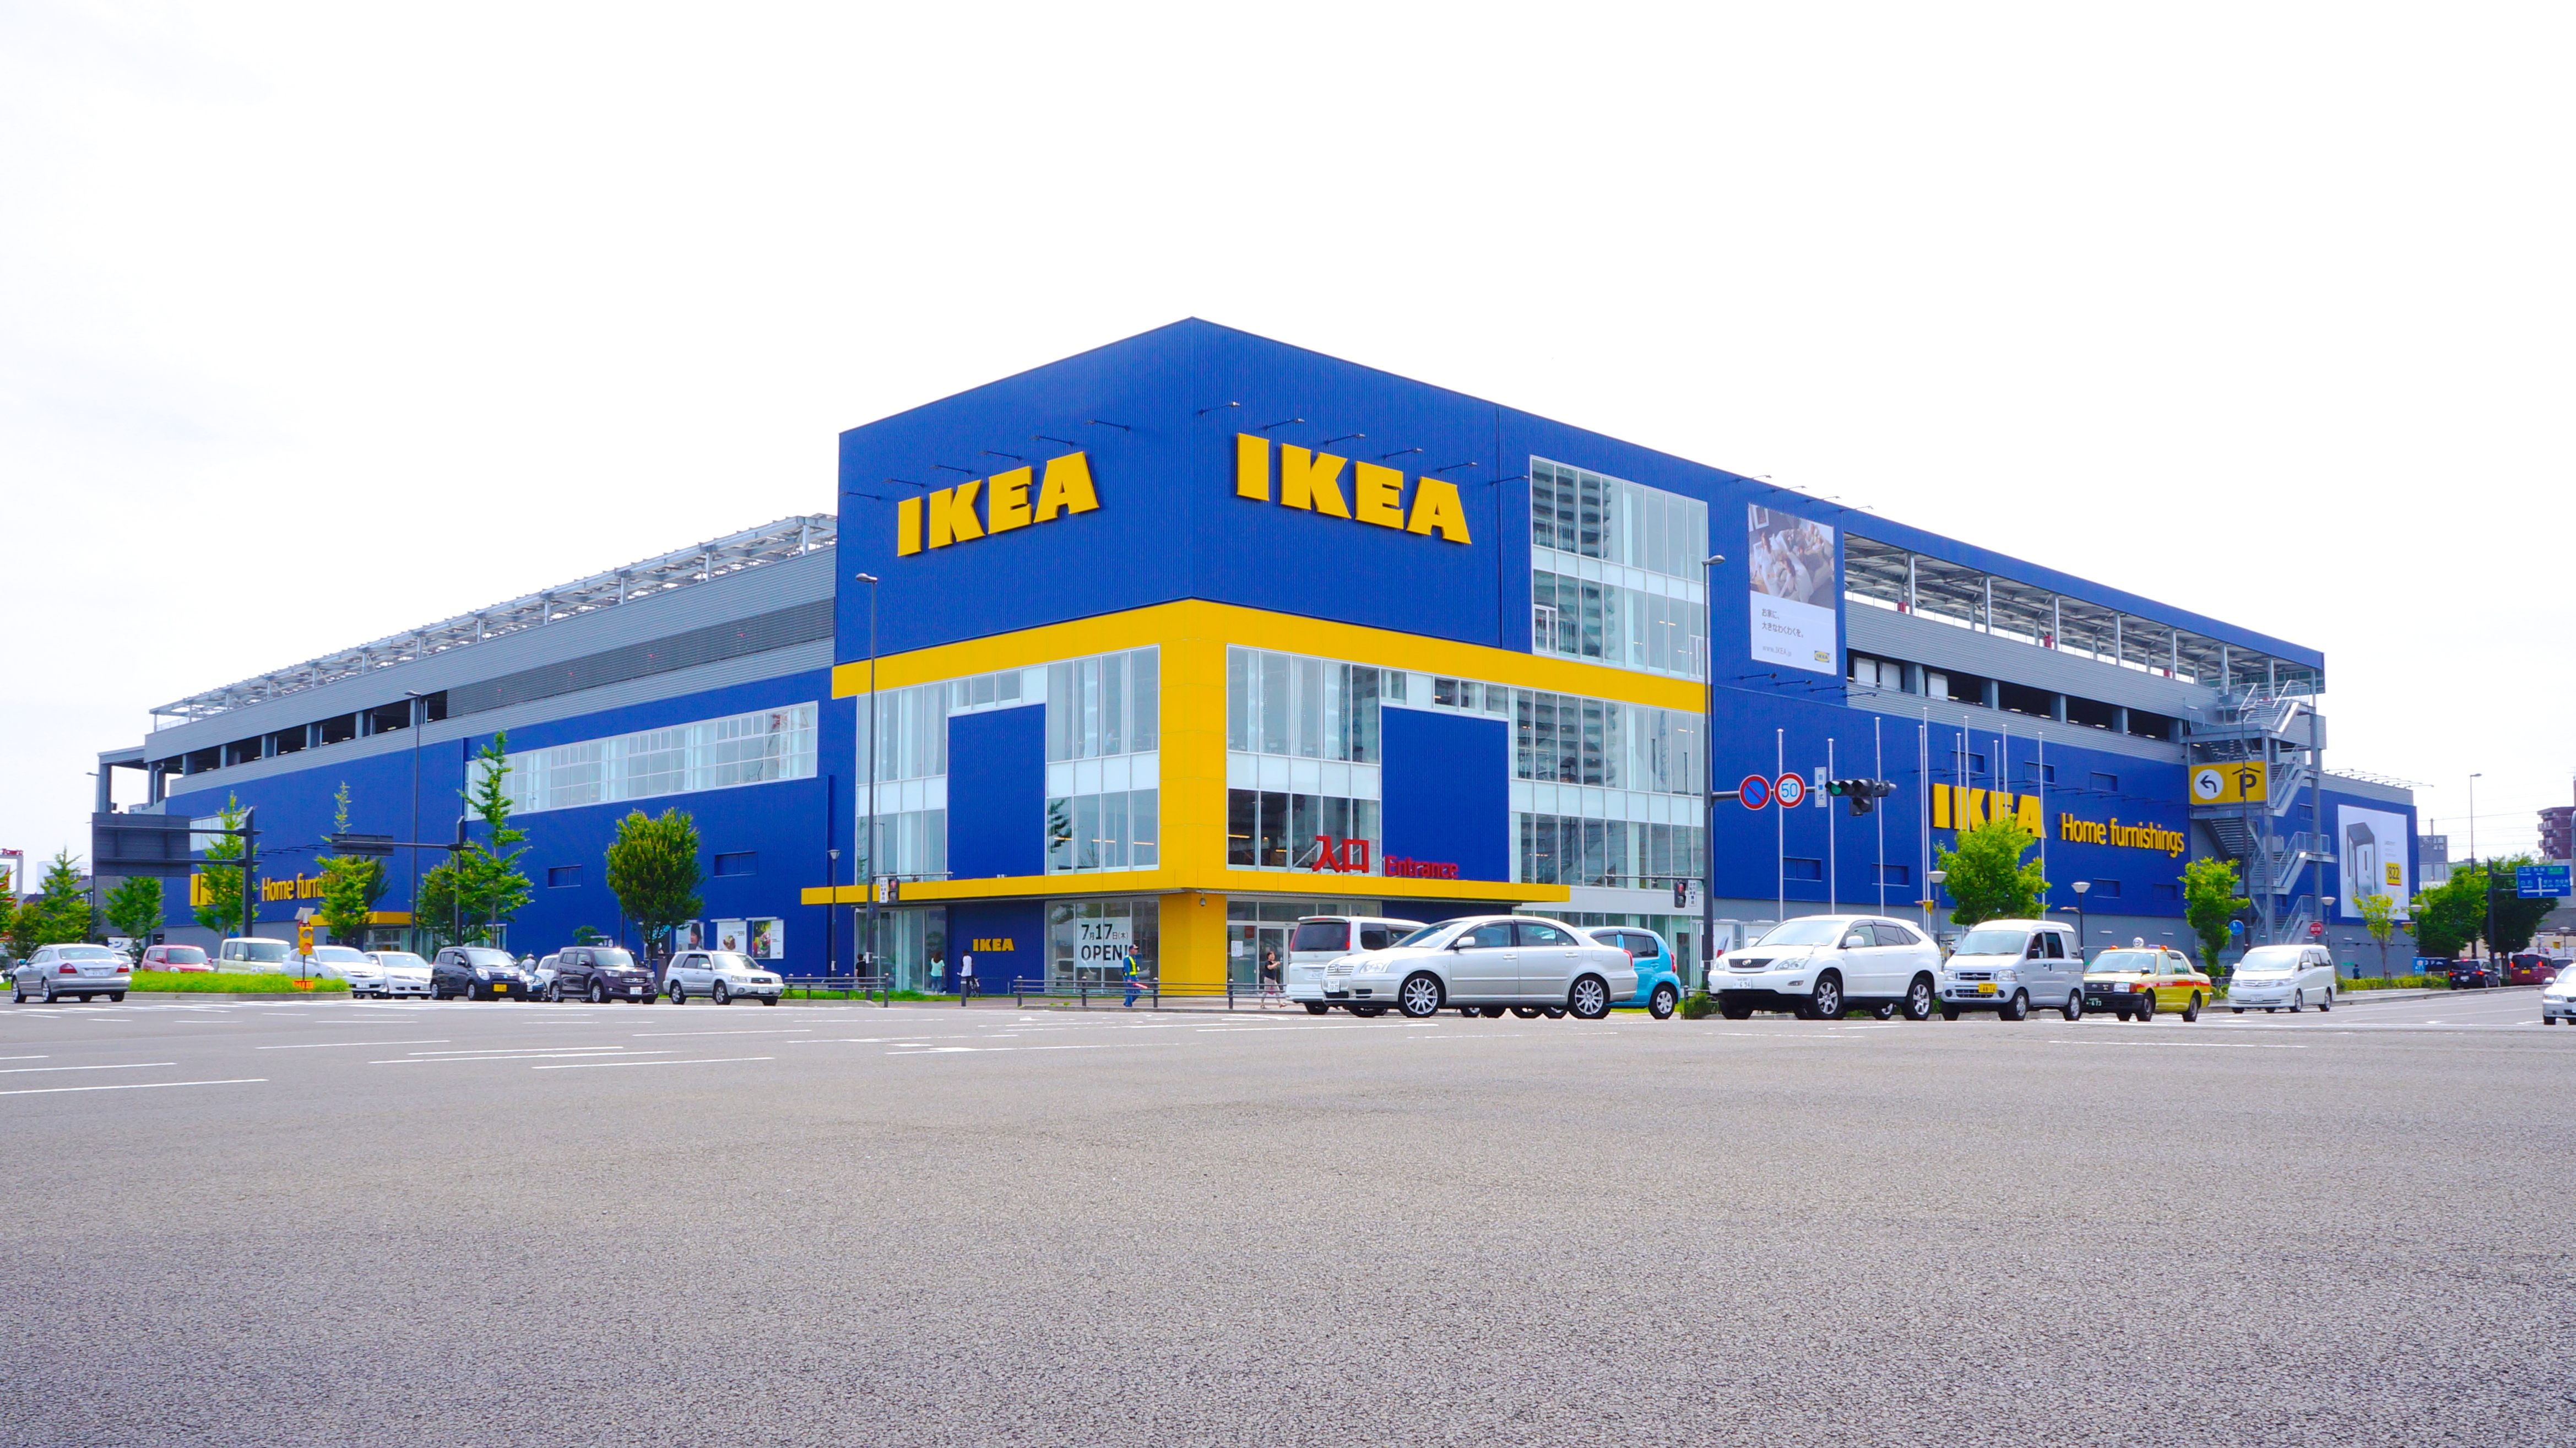 IKEA-invests-in-its-own-plastics-recycling-plant-as-a-bid-to-tackle-waste